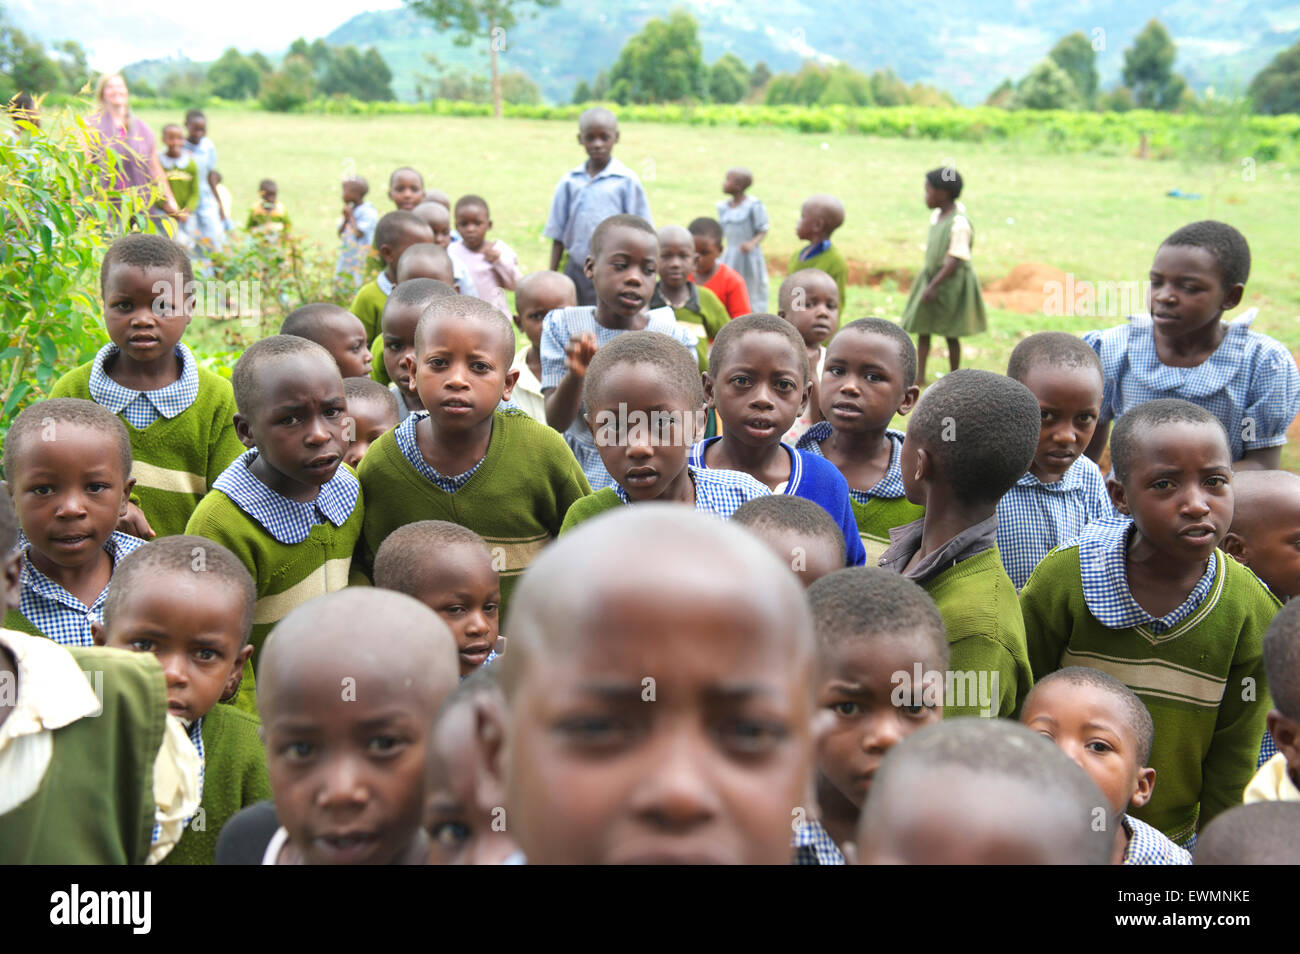 Group of Ugandan school children from a rural school stare at the camera while outside - Stock Image